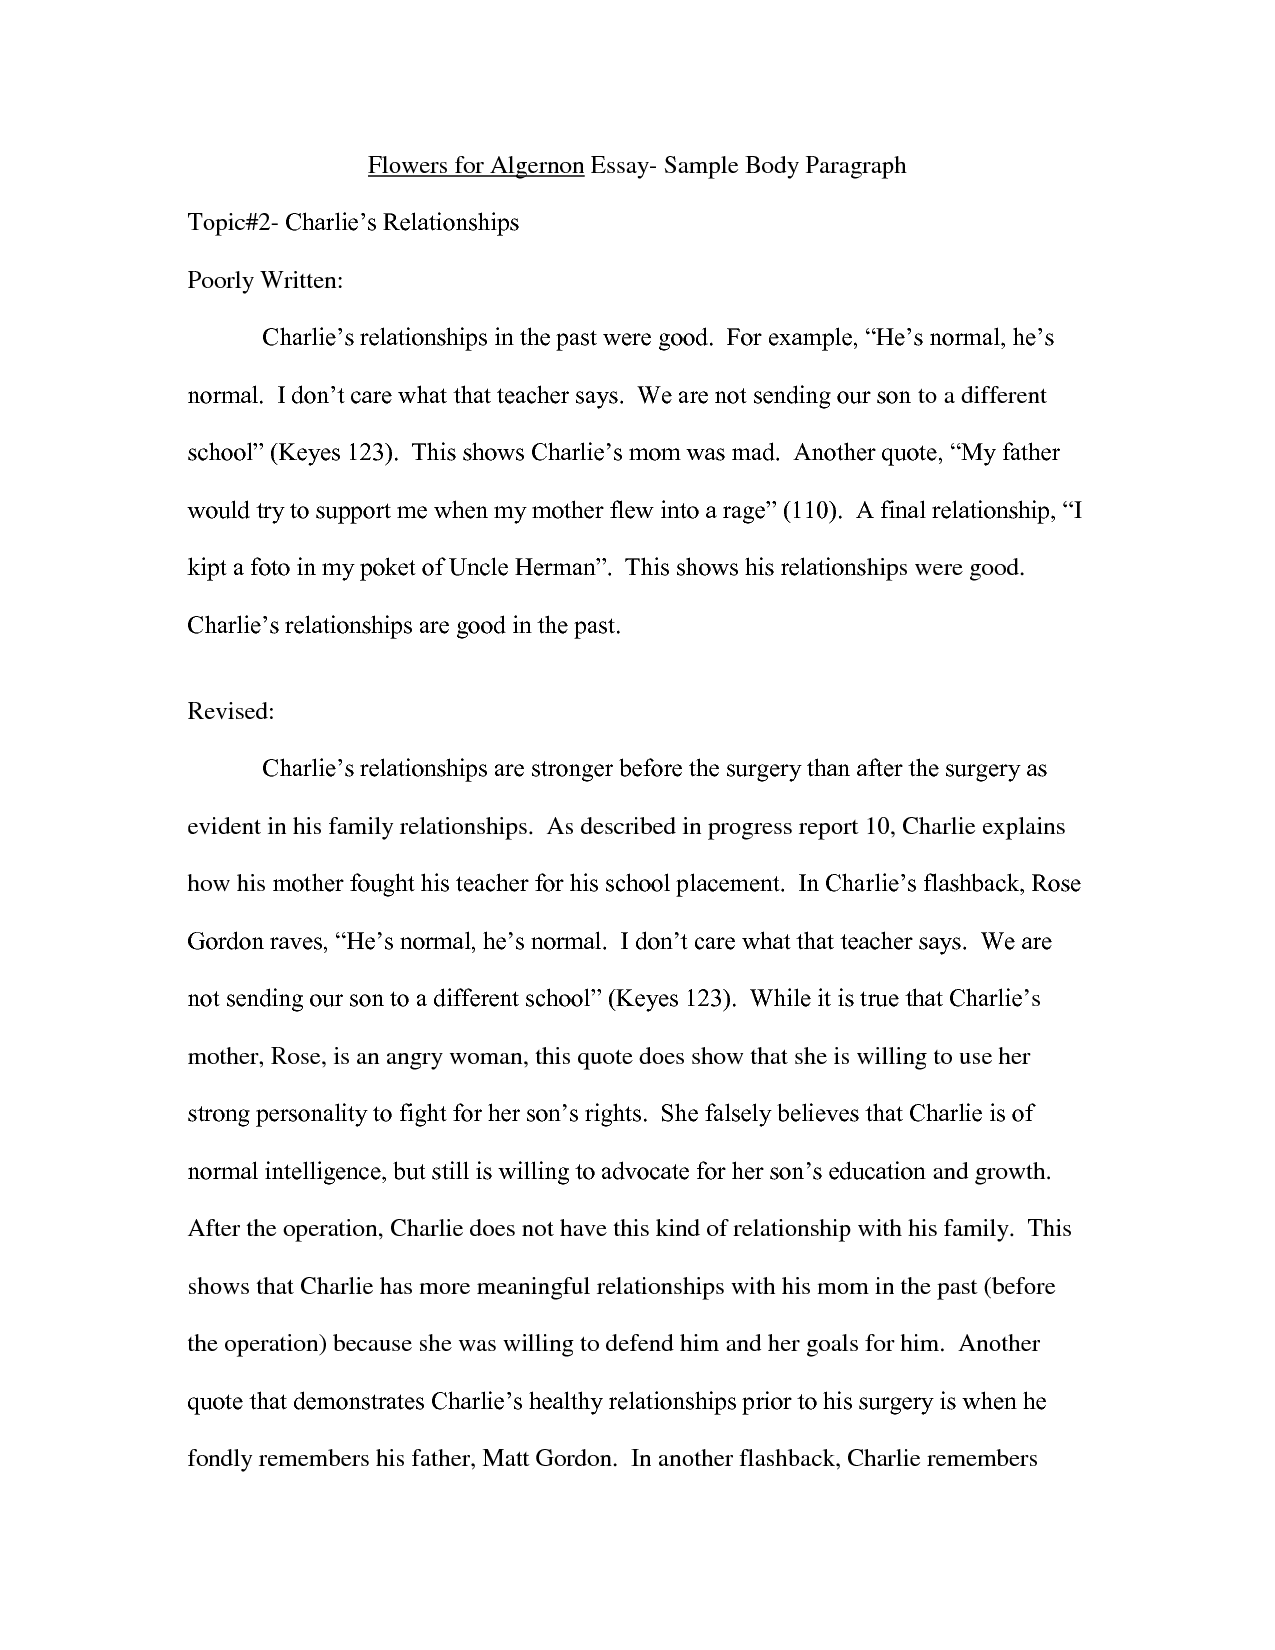 flowers for algernon theme essay the best flowers ideas flowers for algernon essay ytical